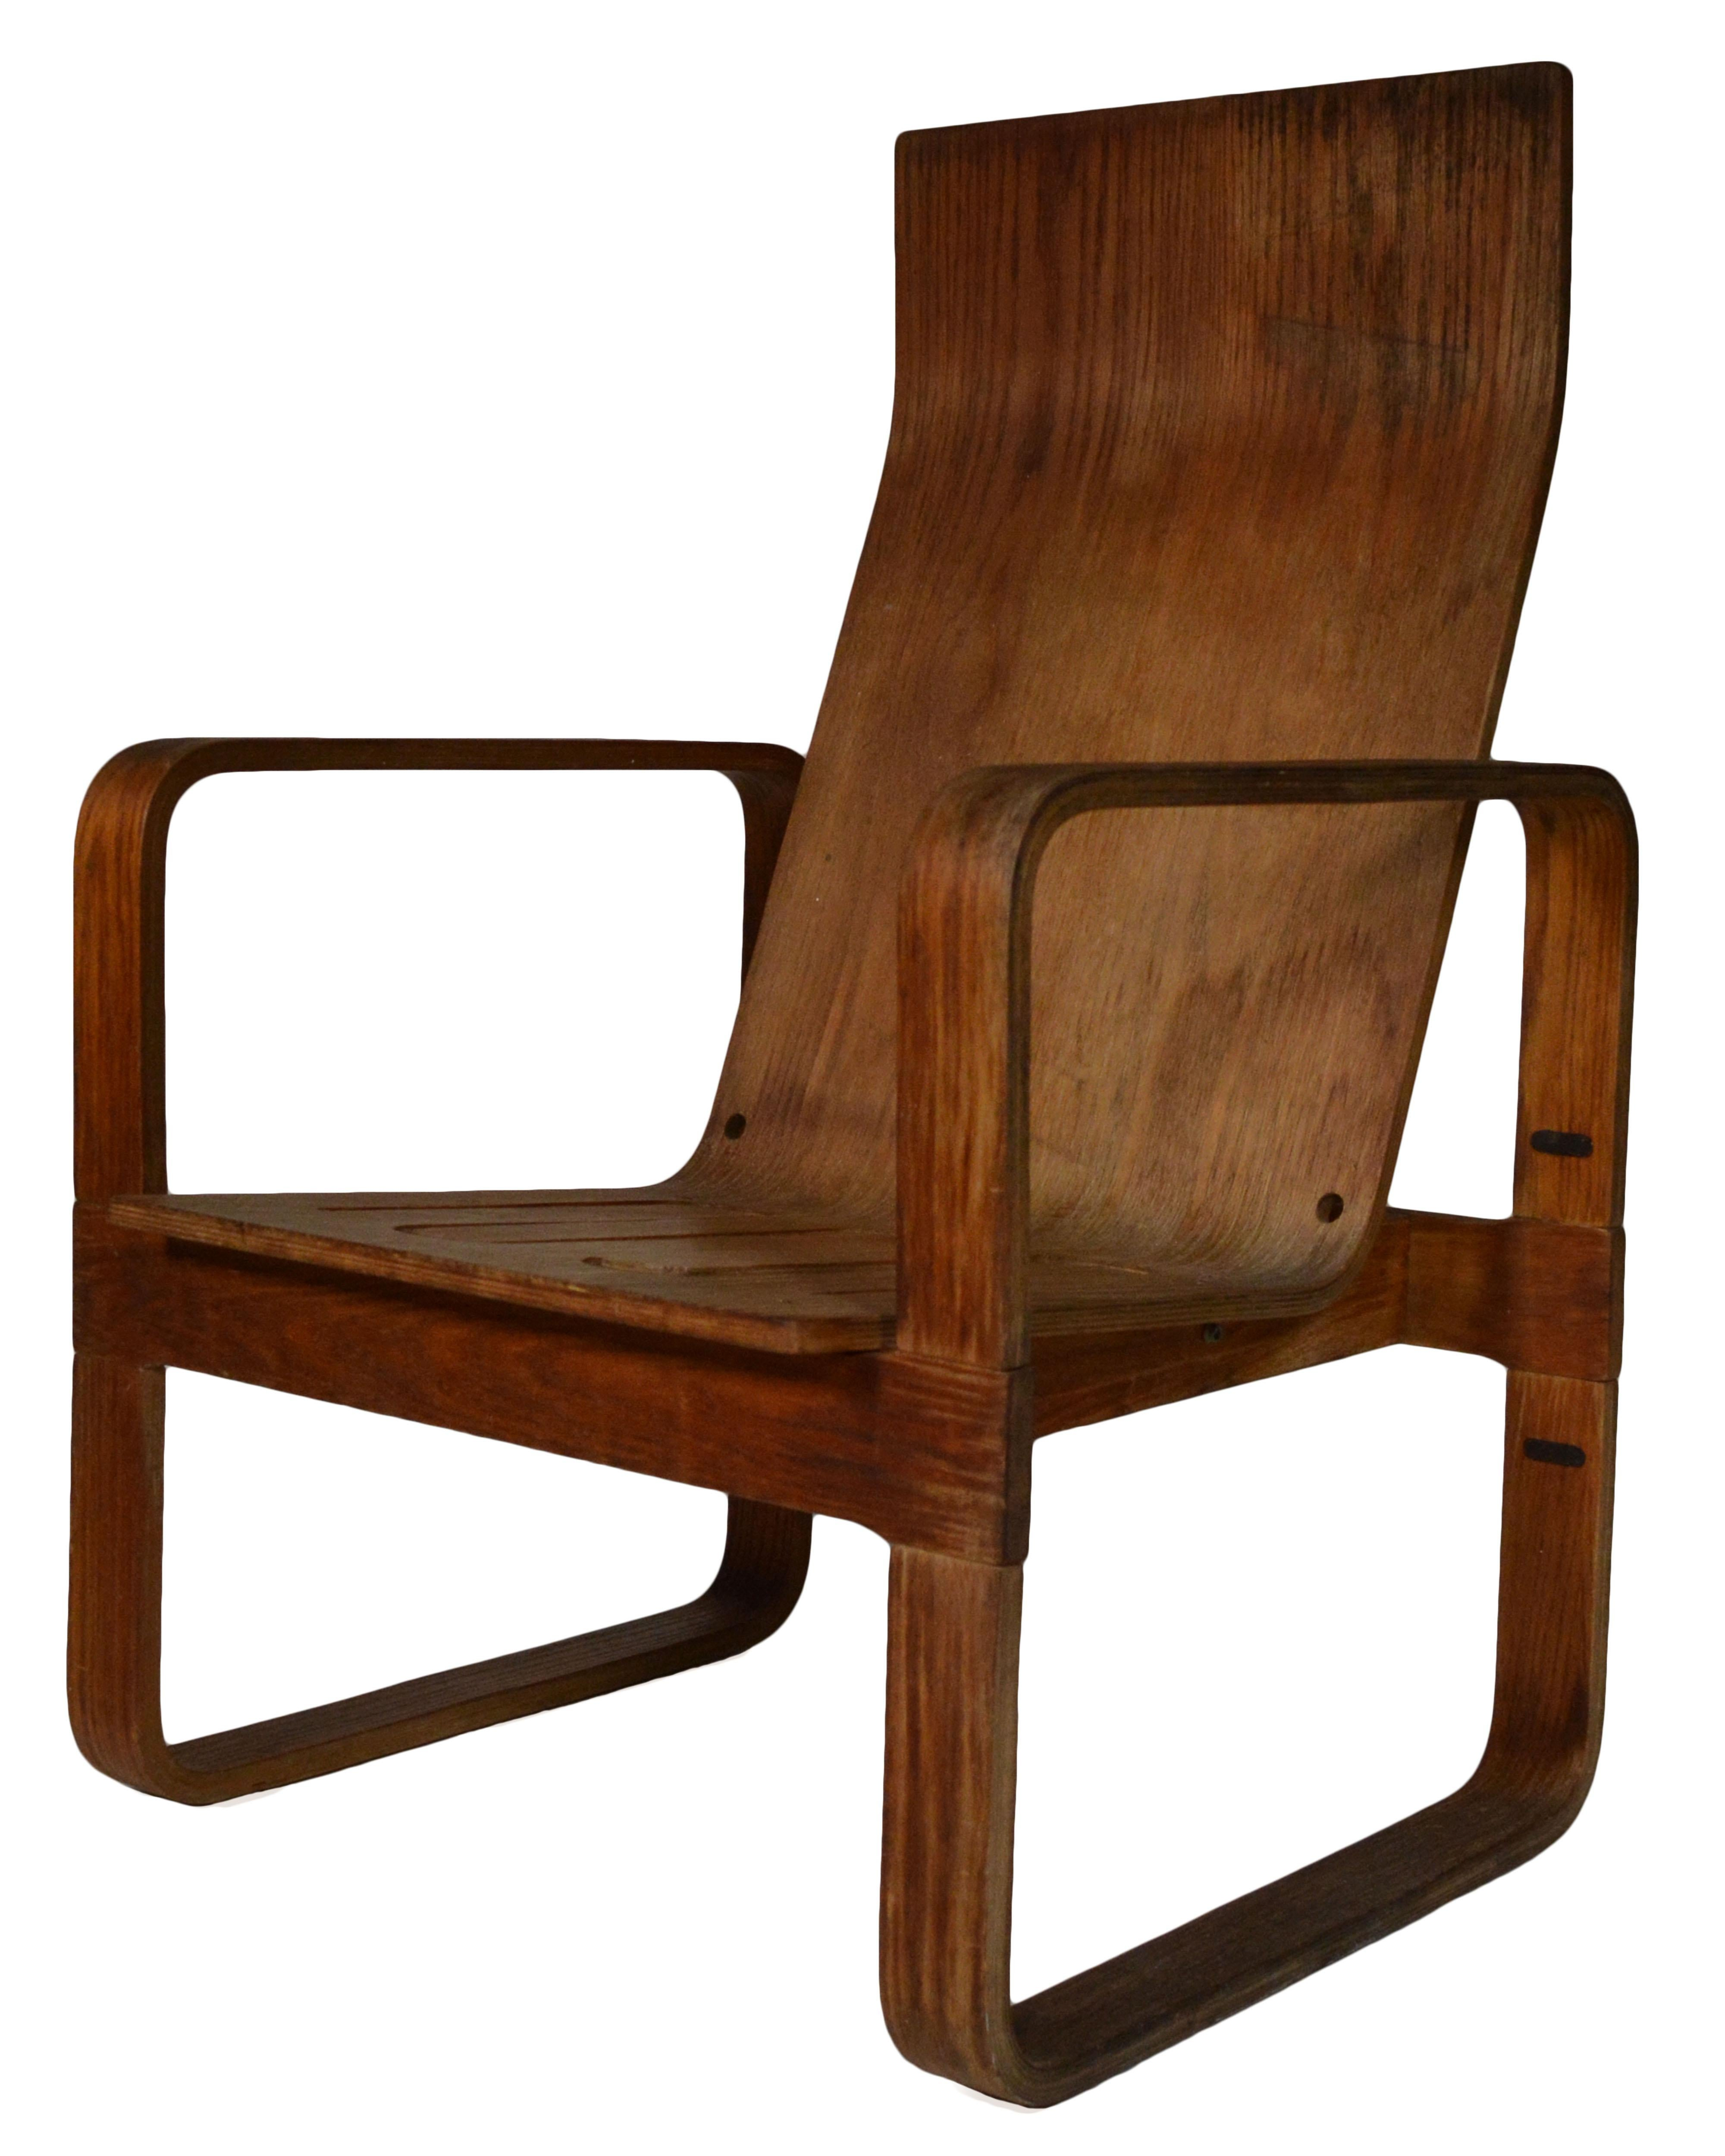 Thonet Bent Plywood Chair   Image 4 Of 4